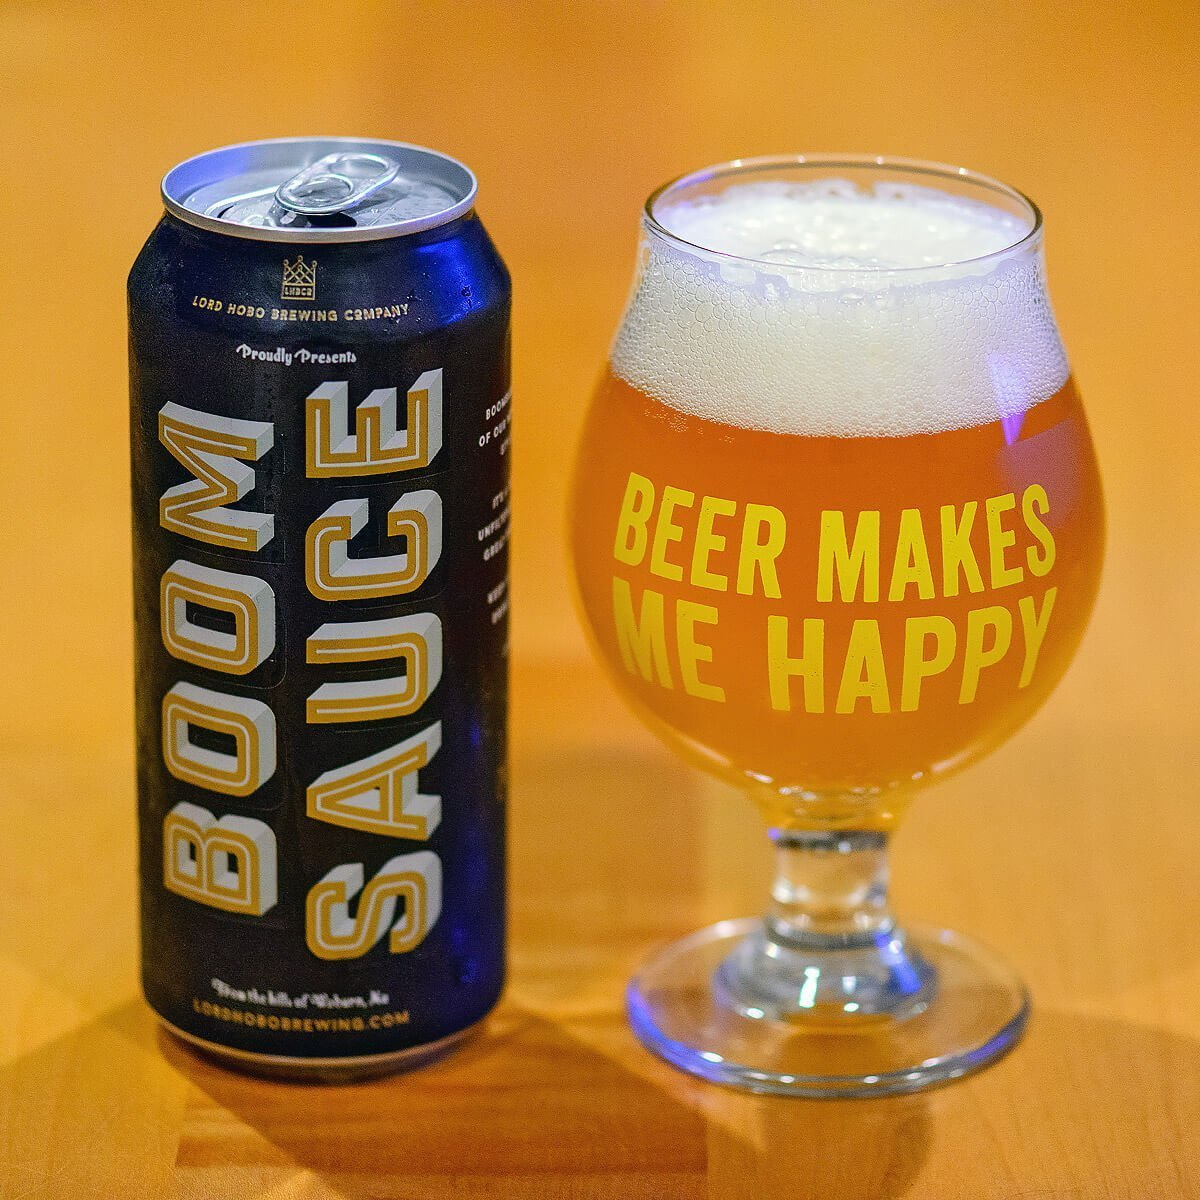 Boomsauce is an American Double IPA in the New England style by Lord Hobo Brewing Co. that brings big hoppy flavors of juice and pine.